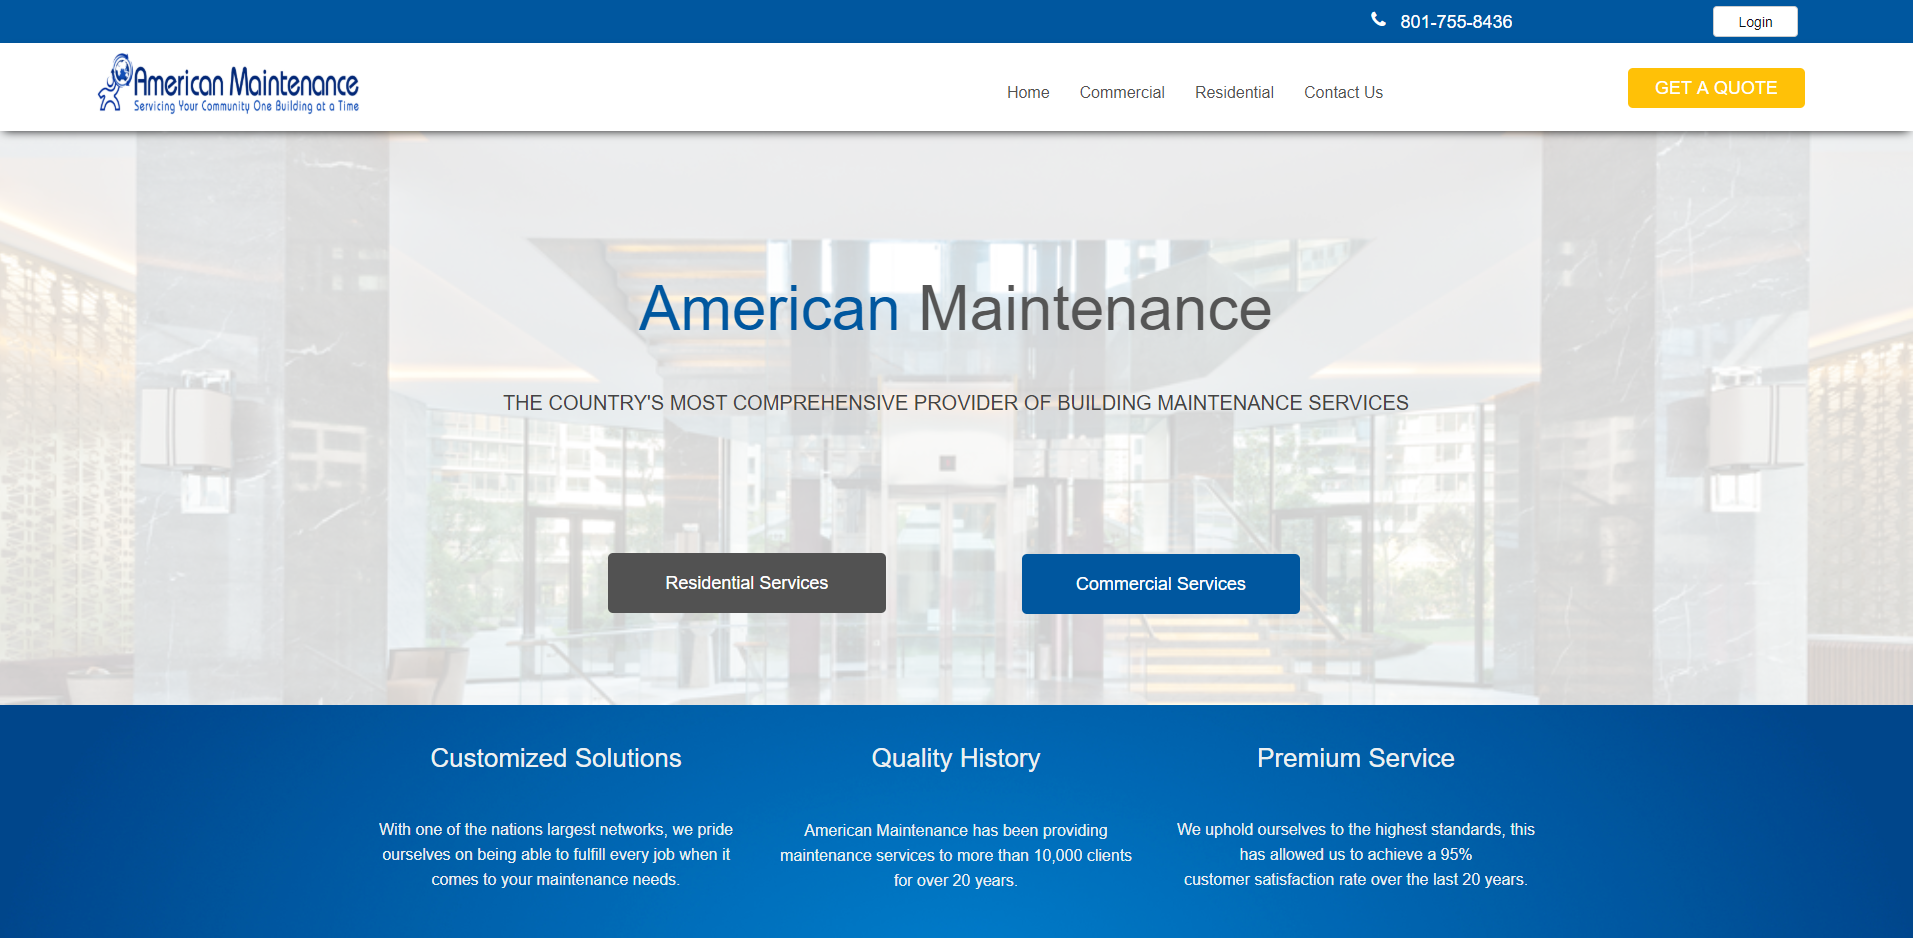 Image of the American Maintenance website displaying the Web Design by EliteWorks Premium Support